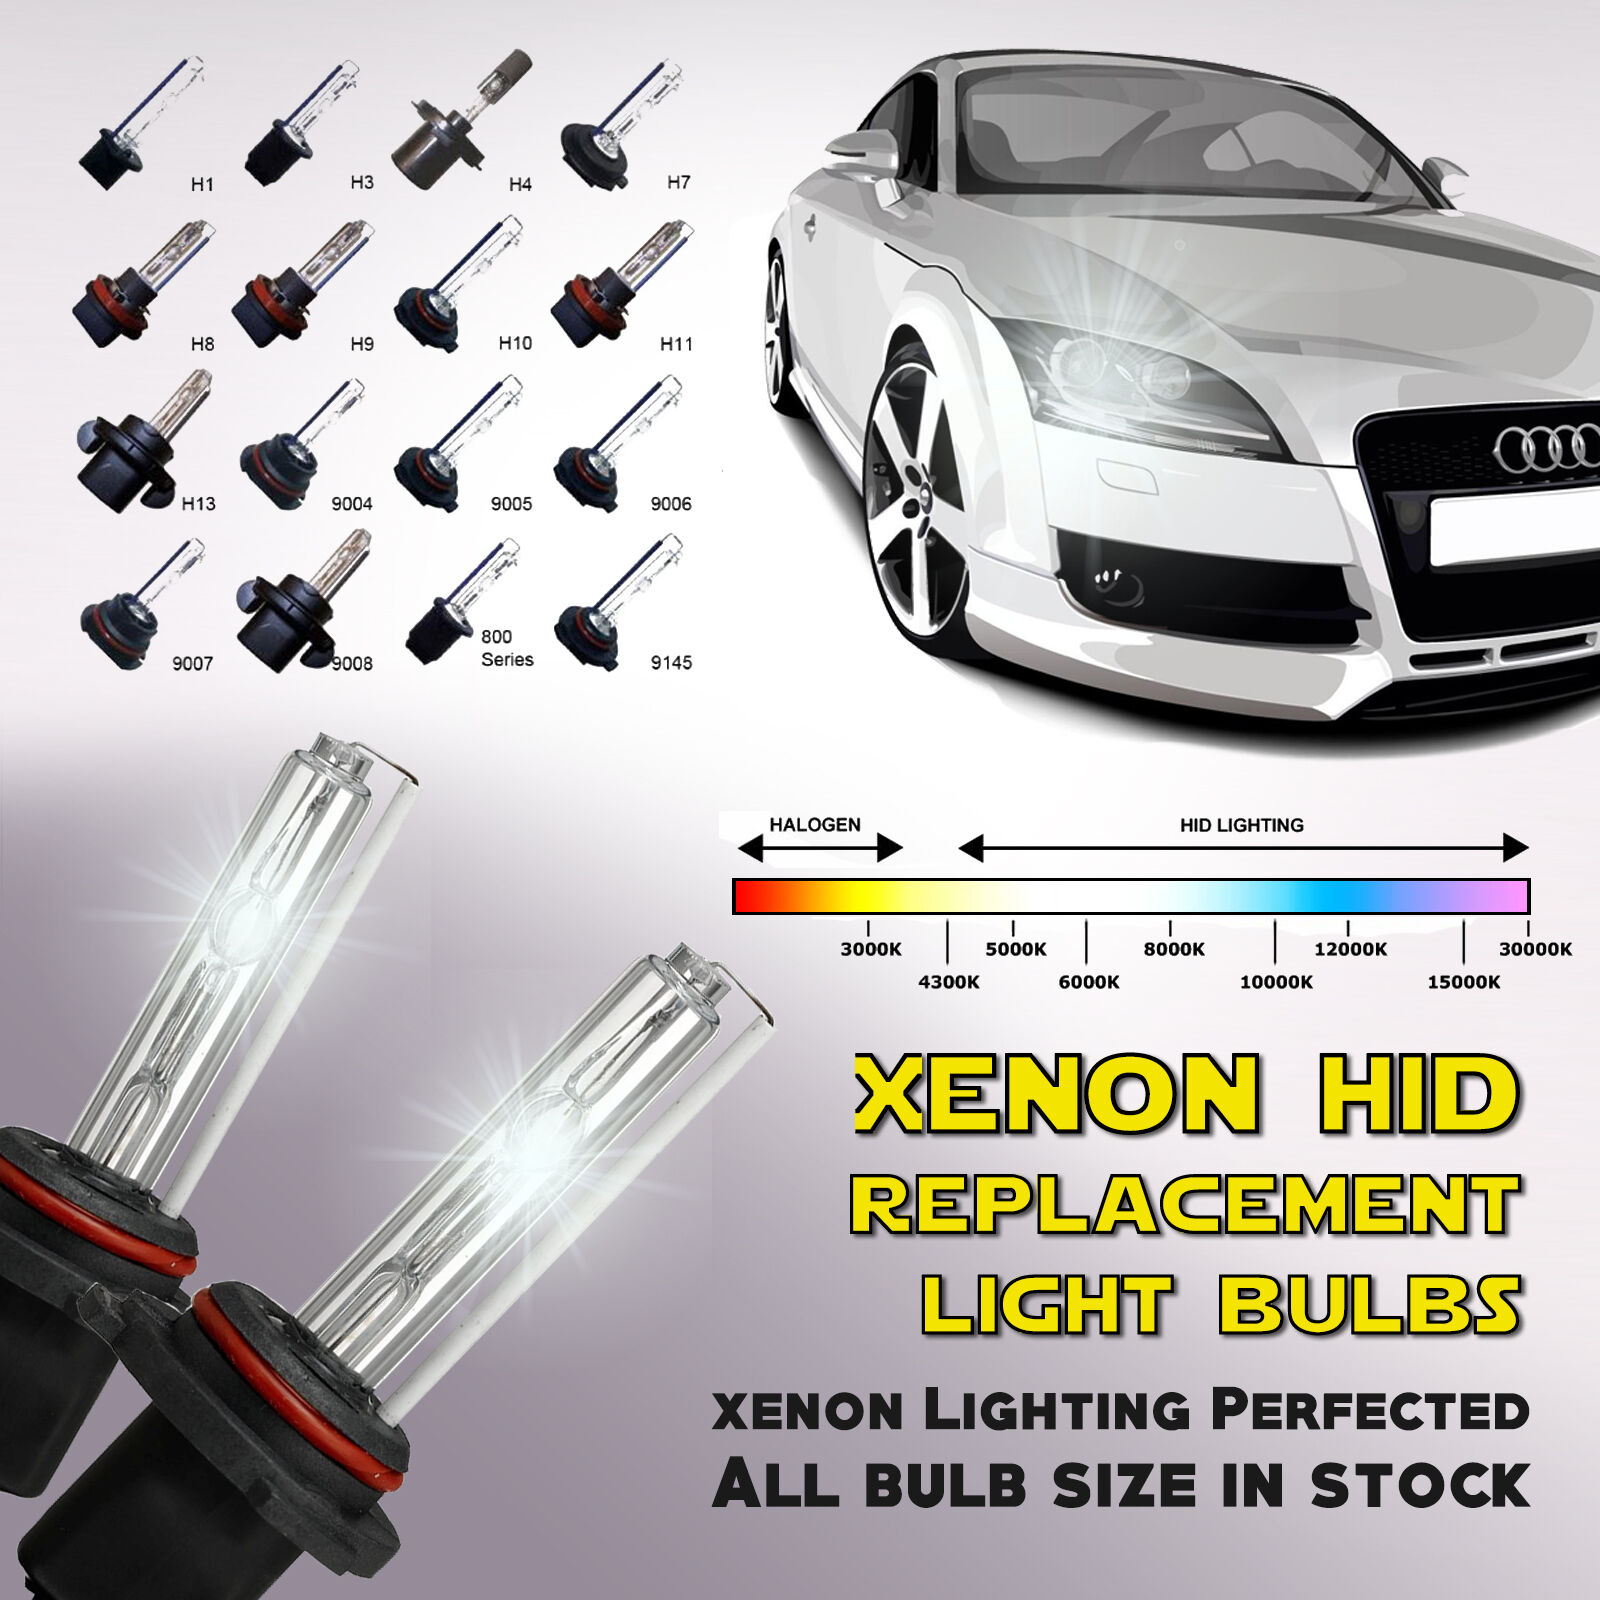 two replacement light bulbs universal h1 h3 h4 h7 h11 h13 9005 9006 xenon hid. Black Bedroom Furniture Sets. Home Design Ideas